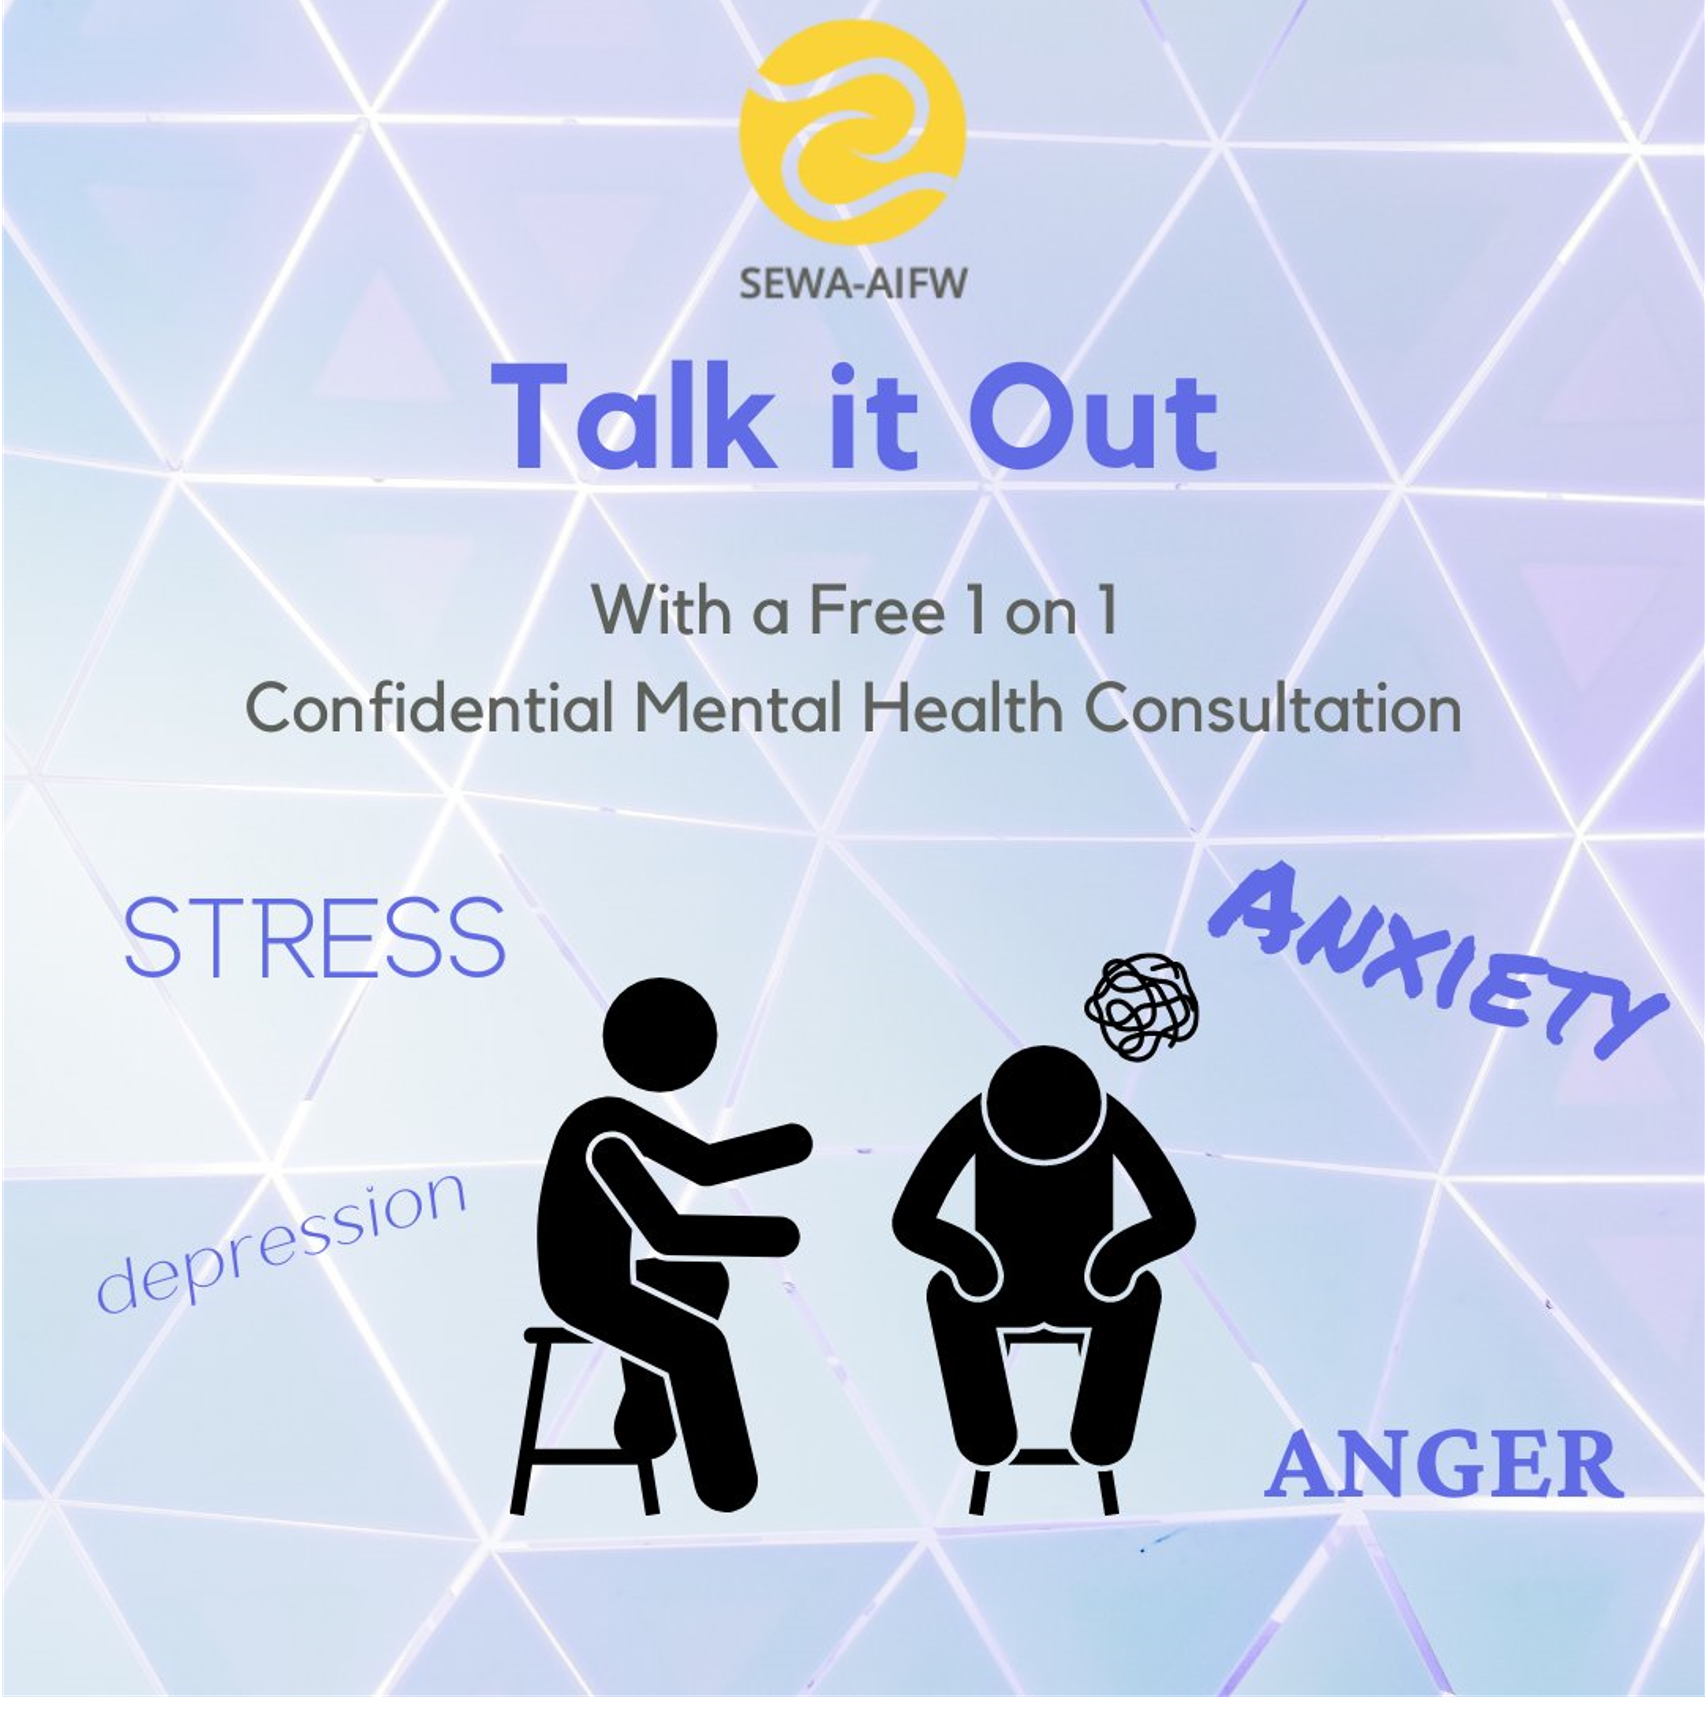 Picture for mental health consultations